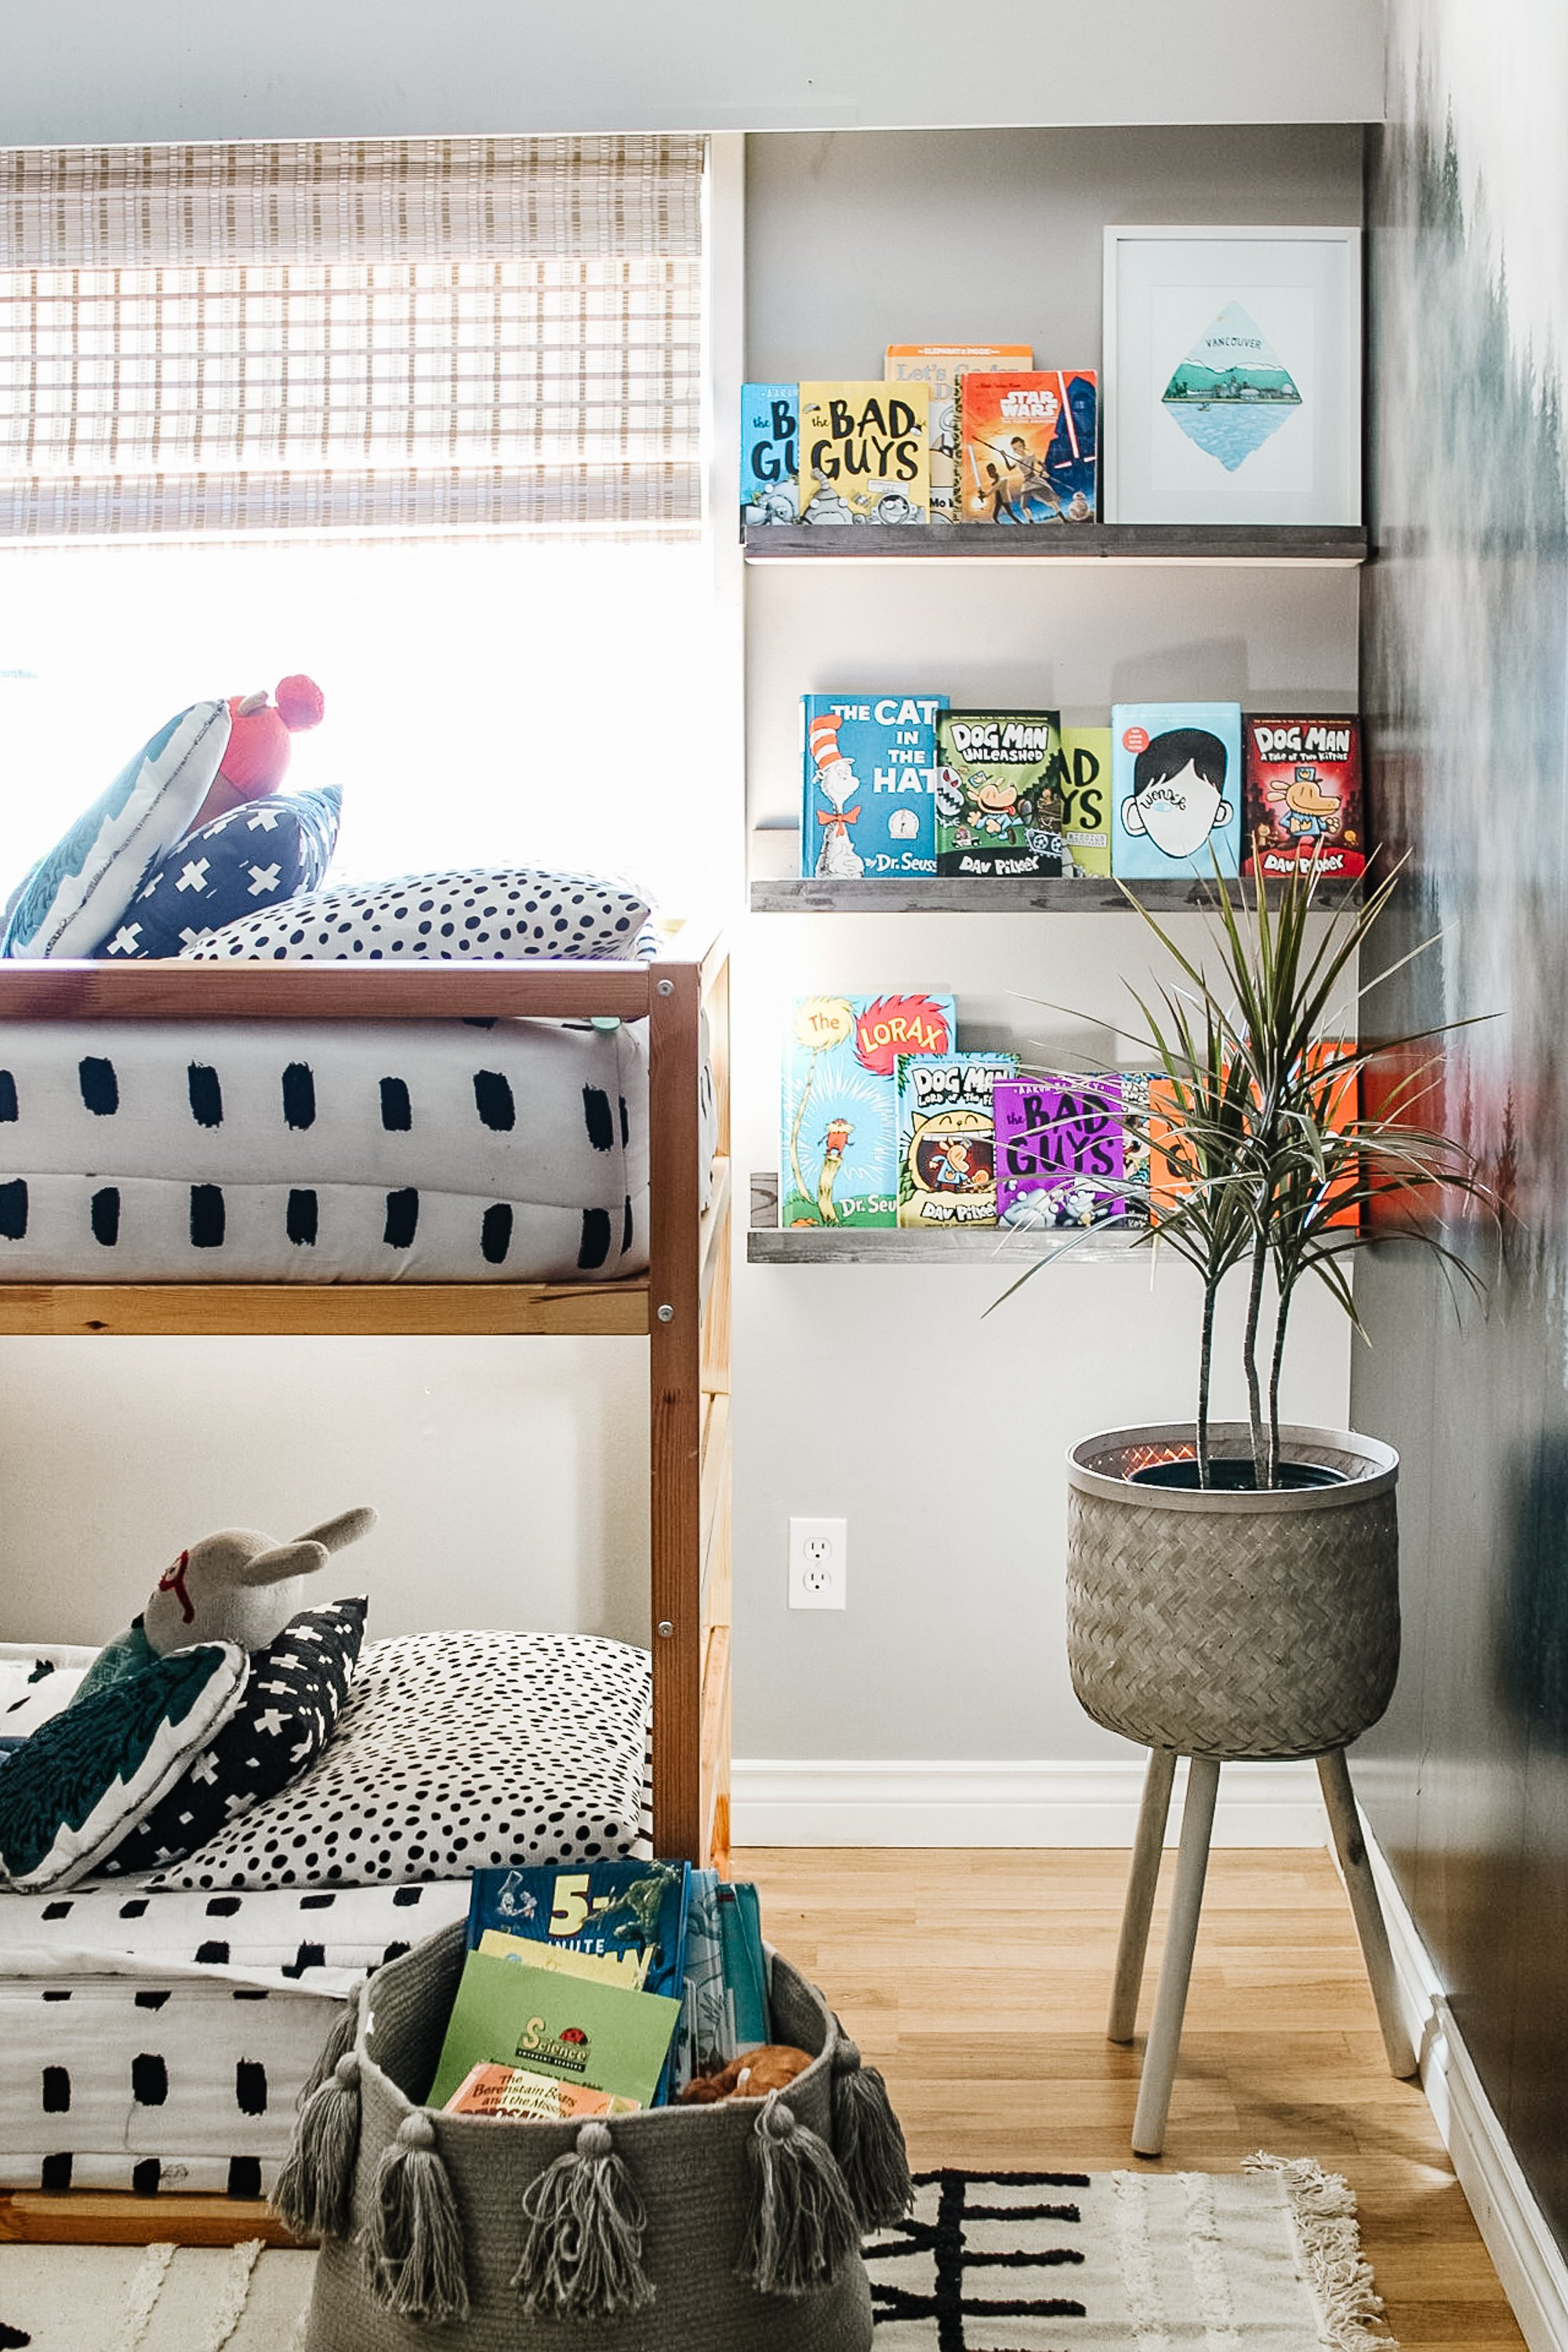 New Window Coverings from Blinds Galore and How We Styled them In our Master Bedroom, Nursery and Boys Bedroom.